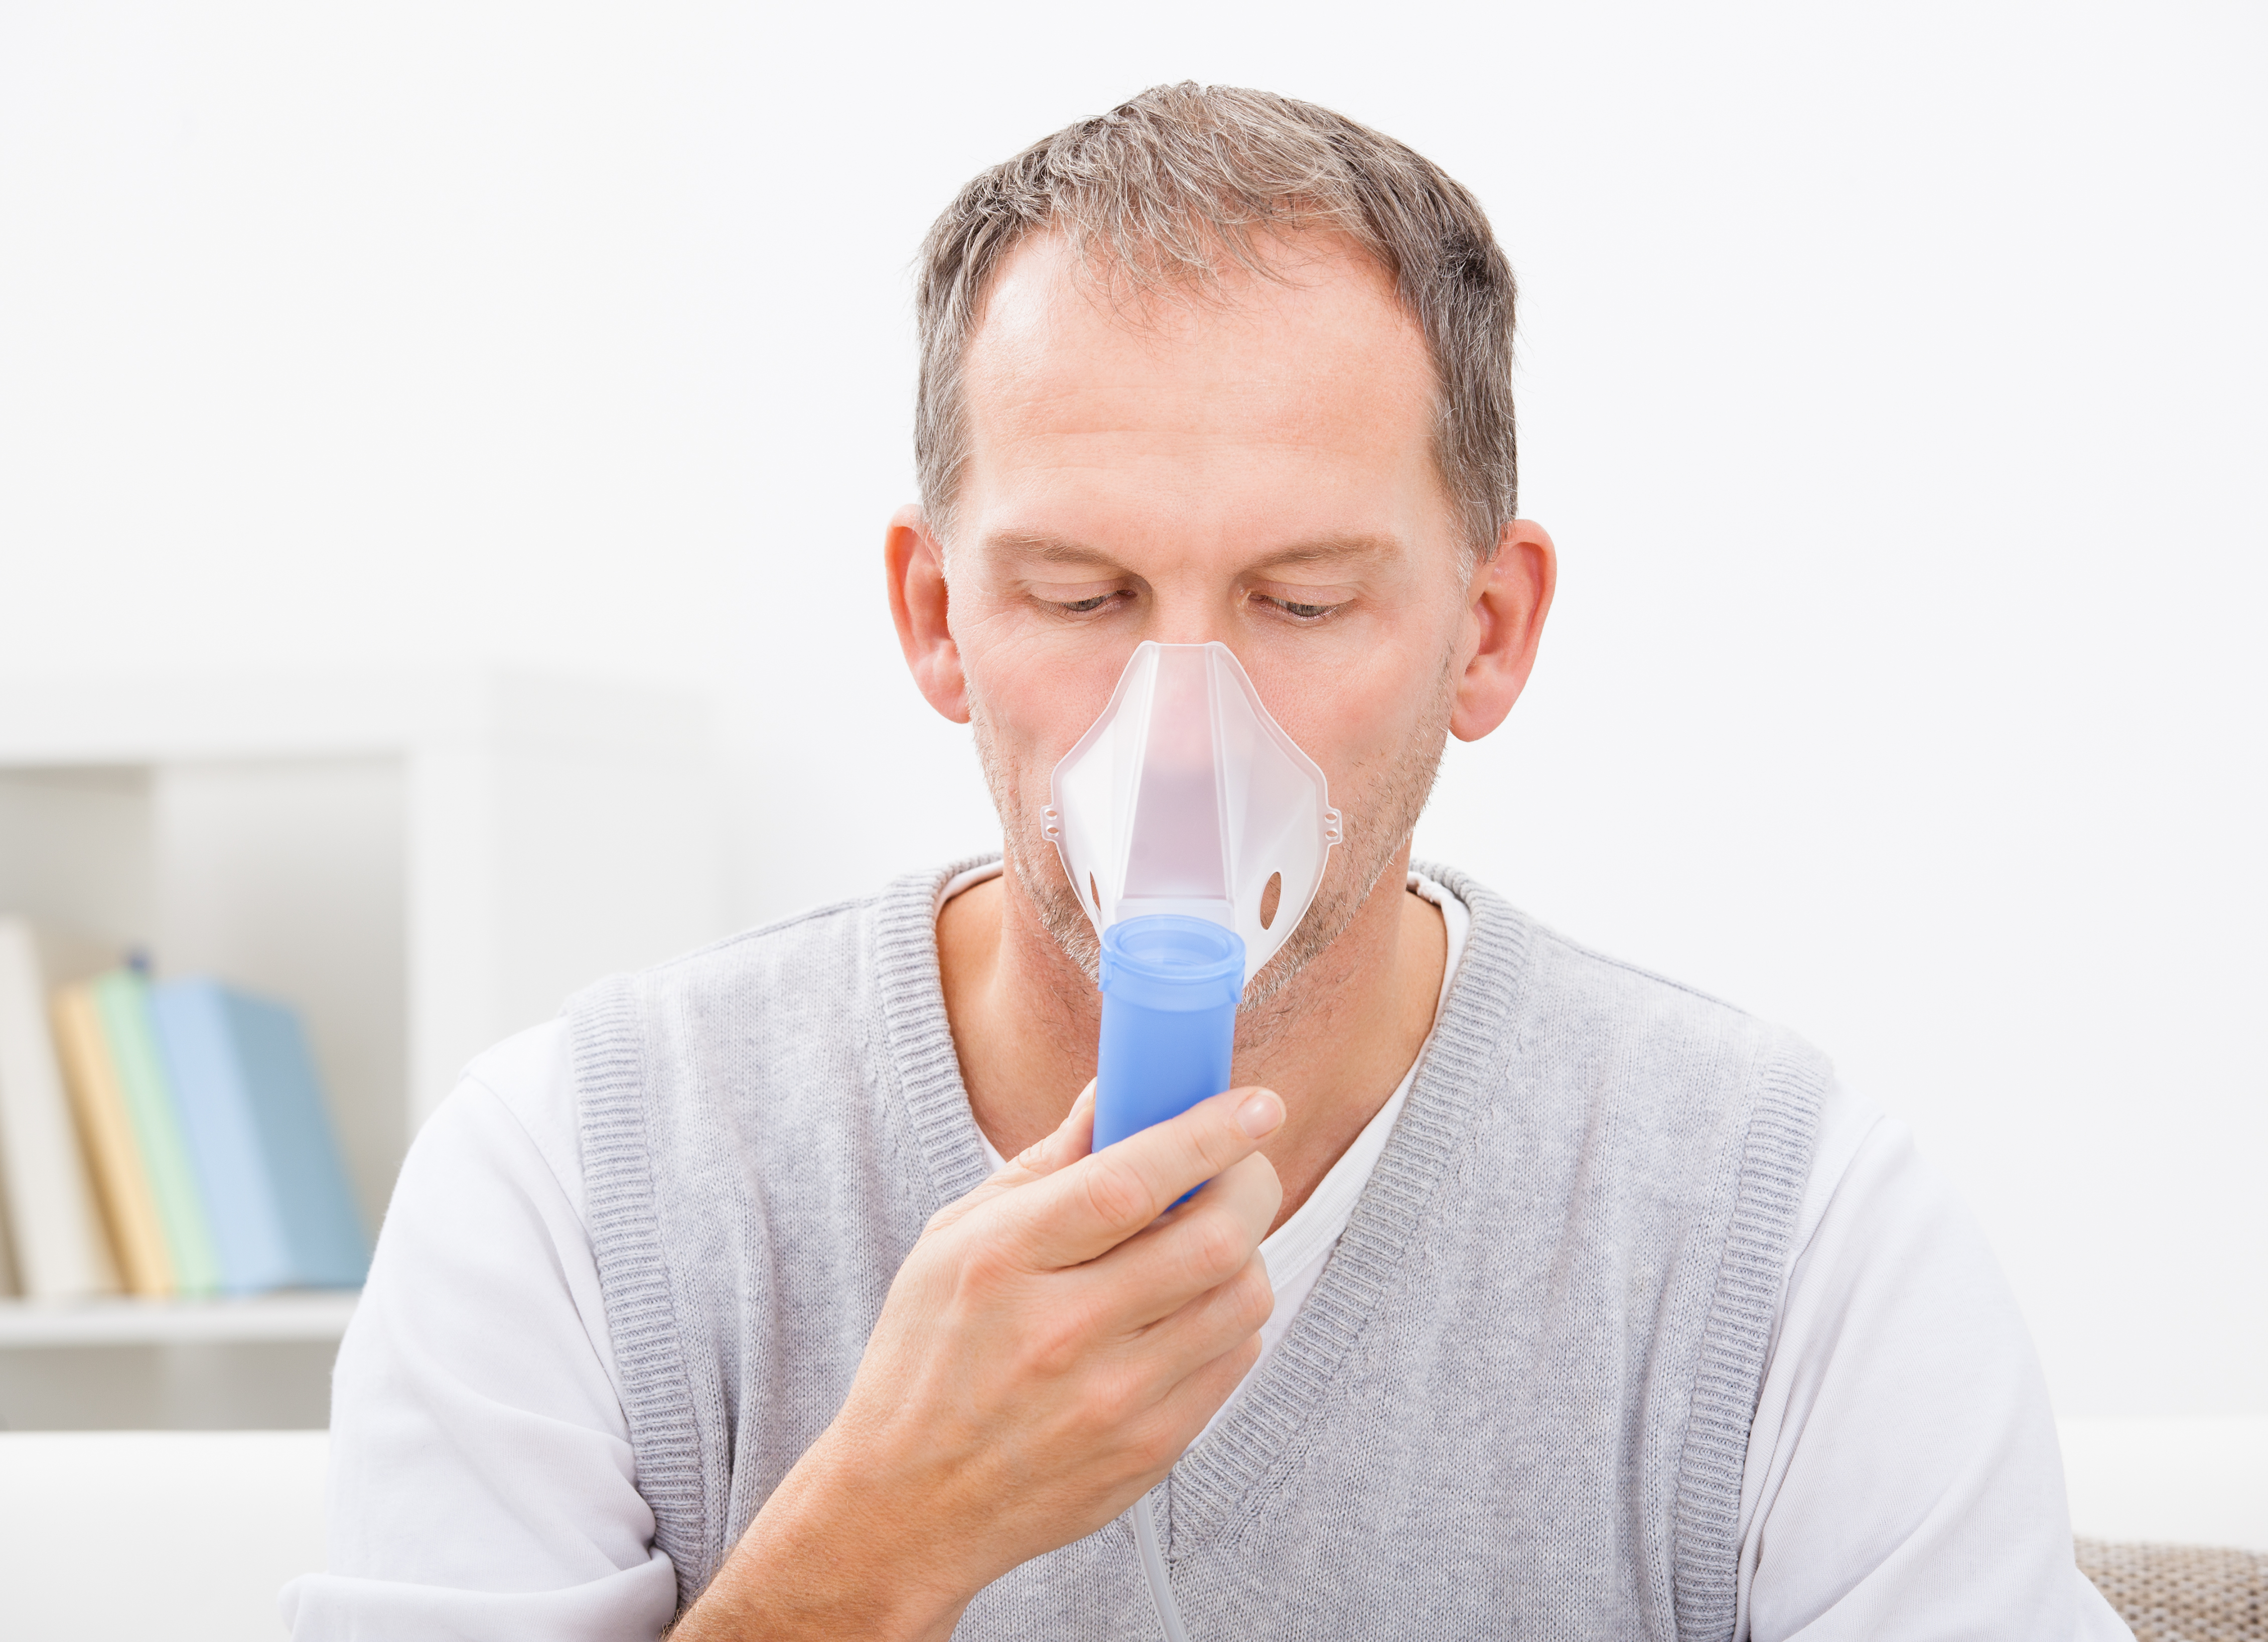 Asthma Differentiated from COPD Using FENO Measurement